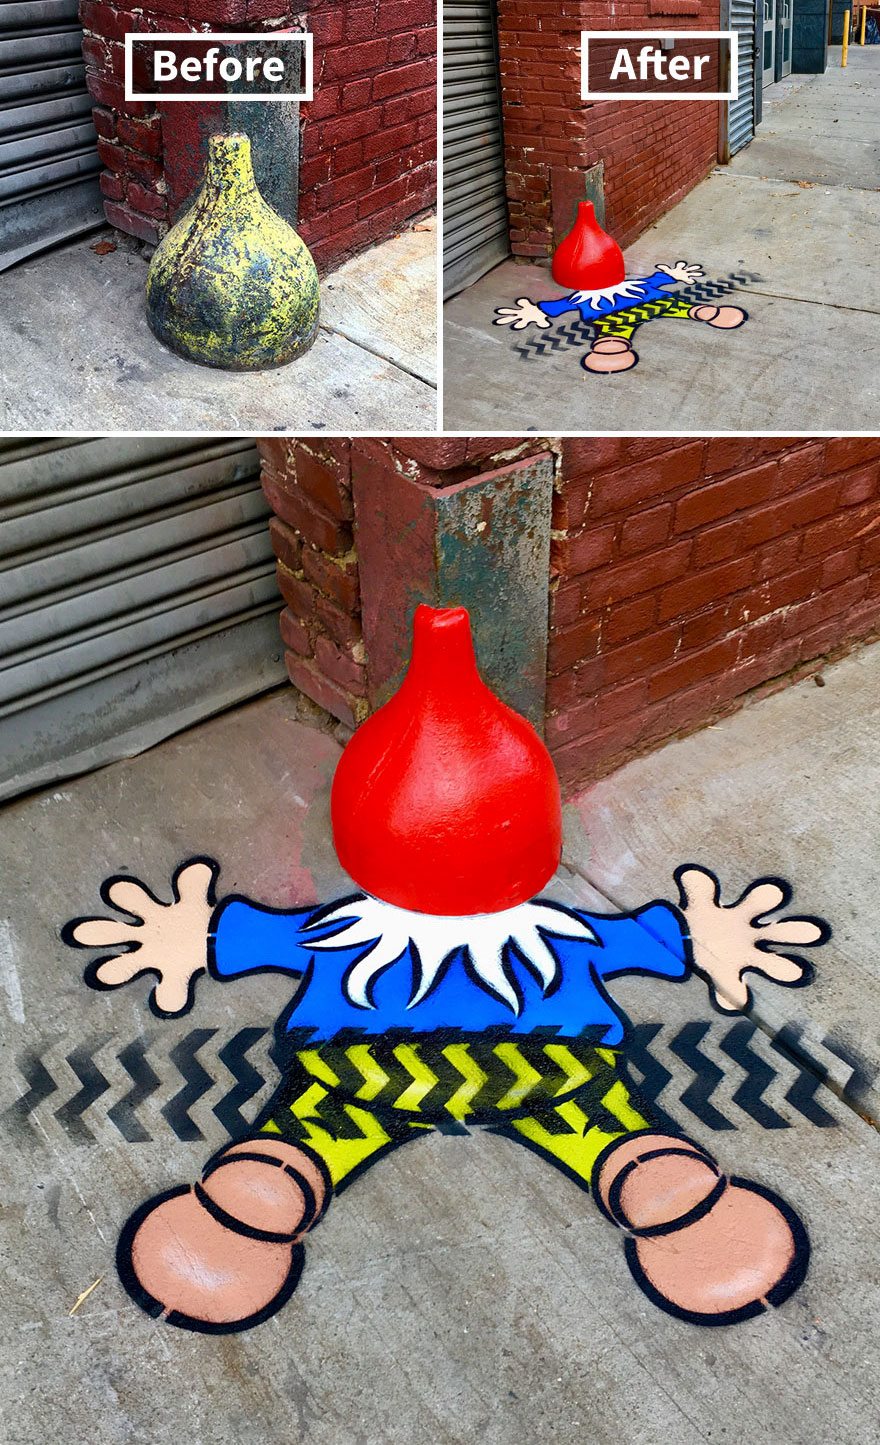 Gnome Down (Brooklyn)